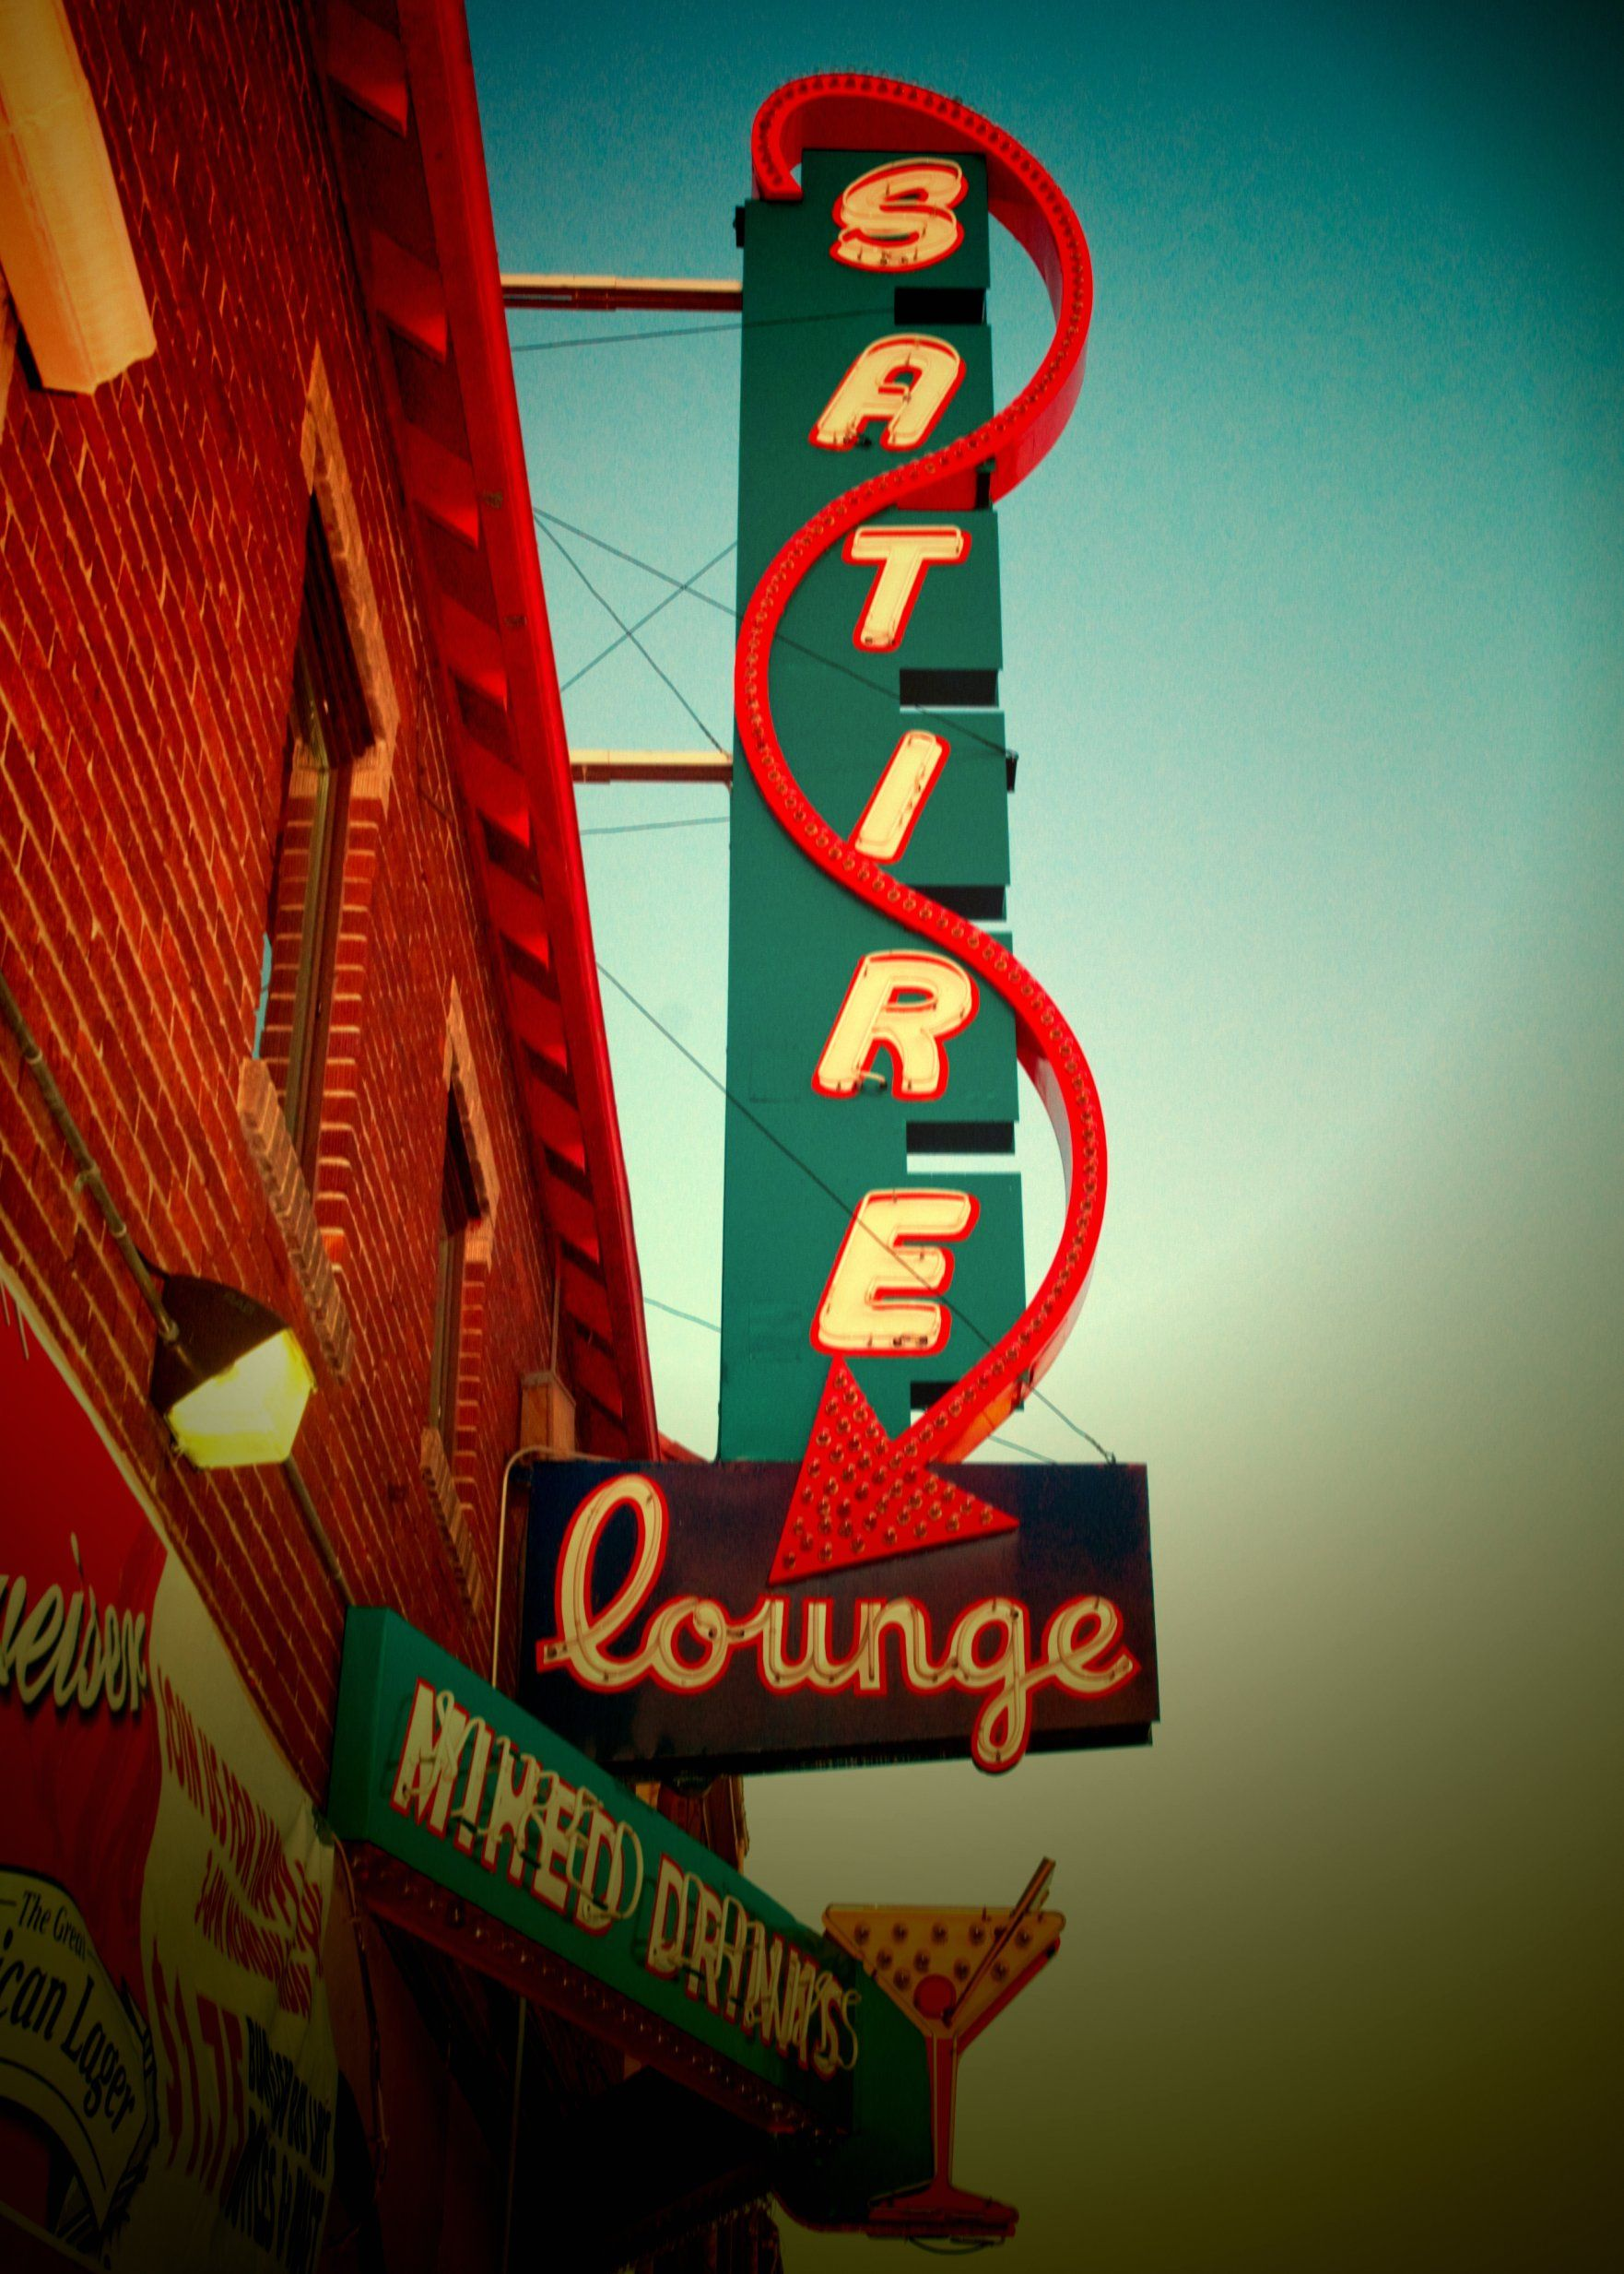 Vintage Neon The Satire Lounge Found On East Colfax In Denver